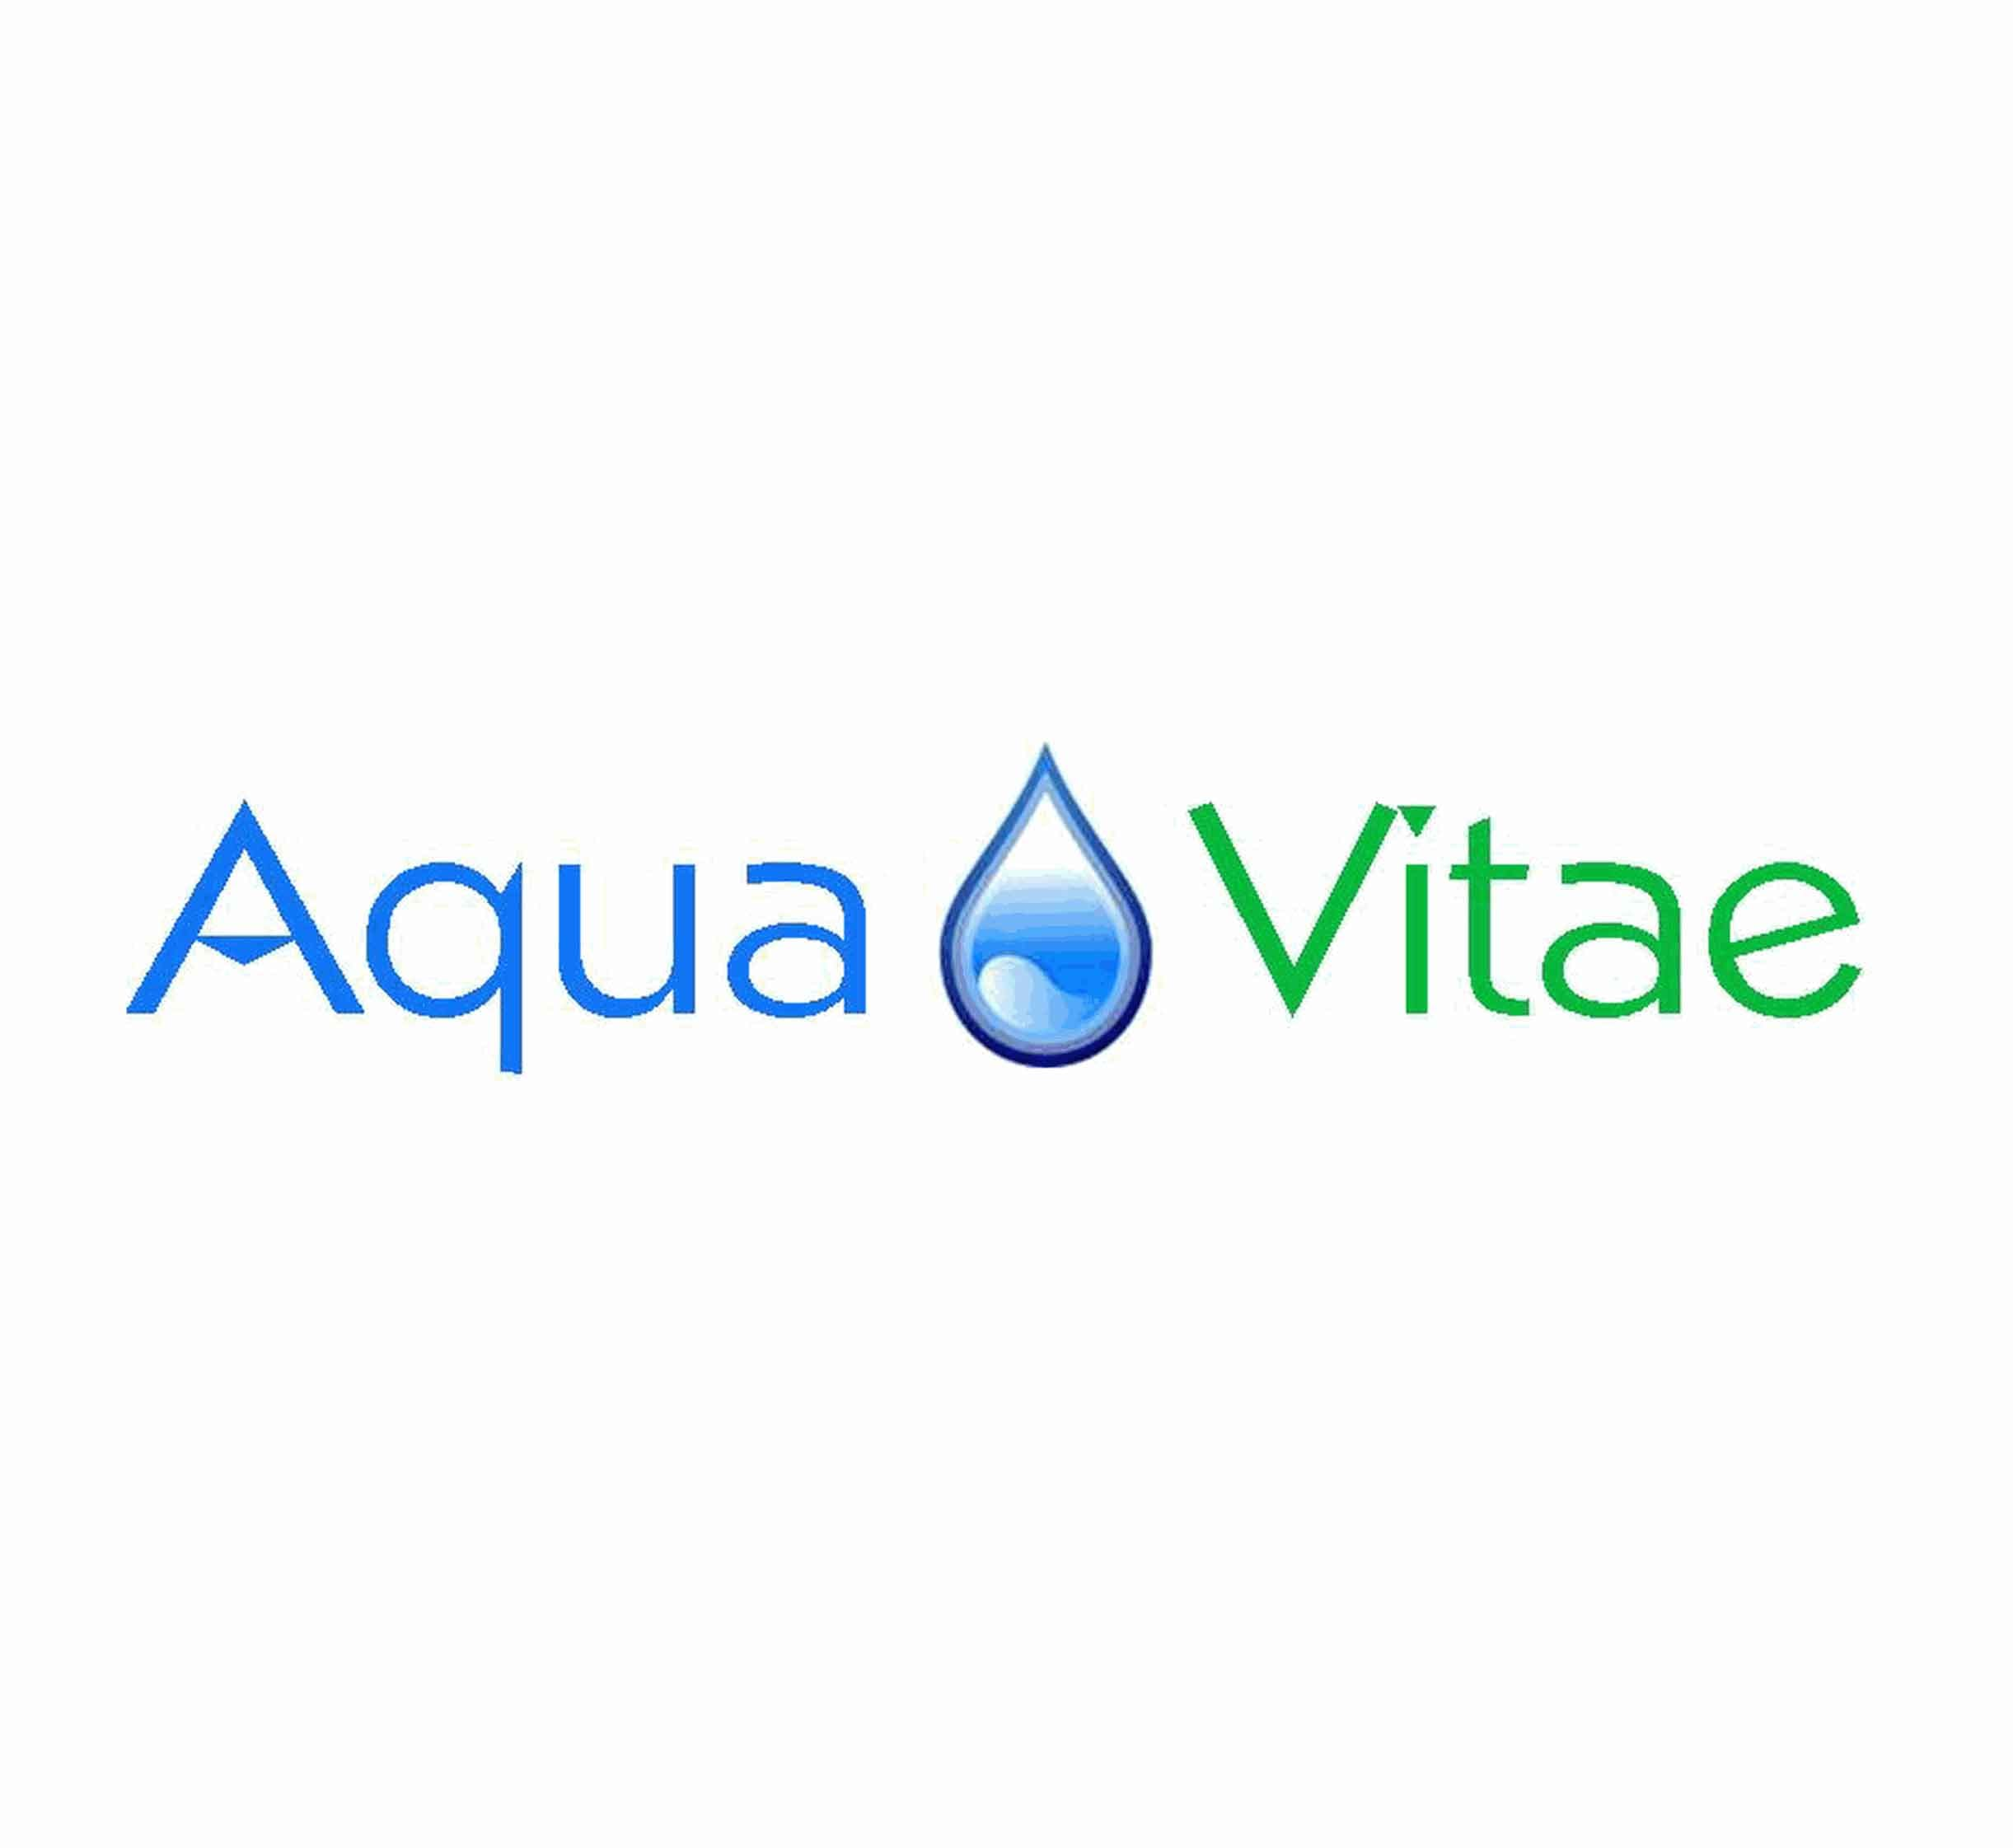 AquaVitae, logo by New Paradigm graphic design, Santa Rosa, CA